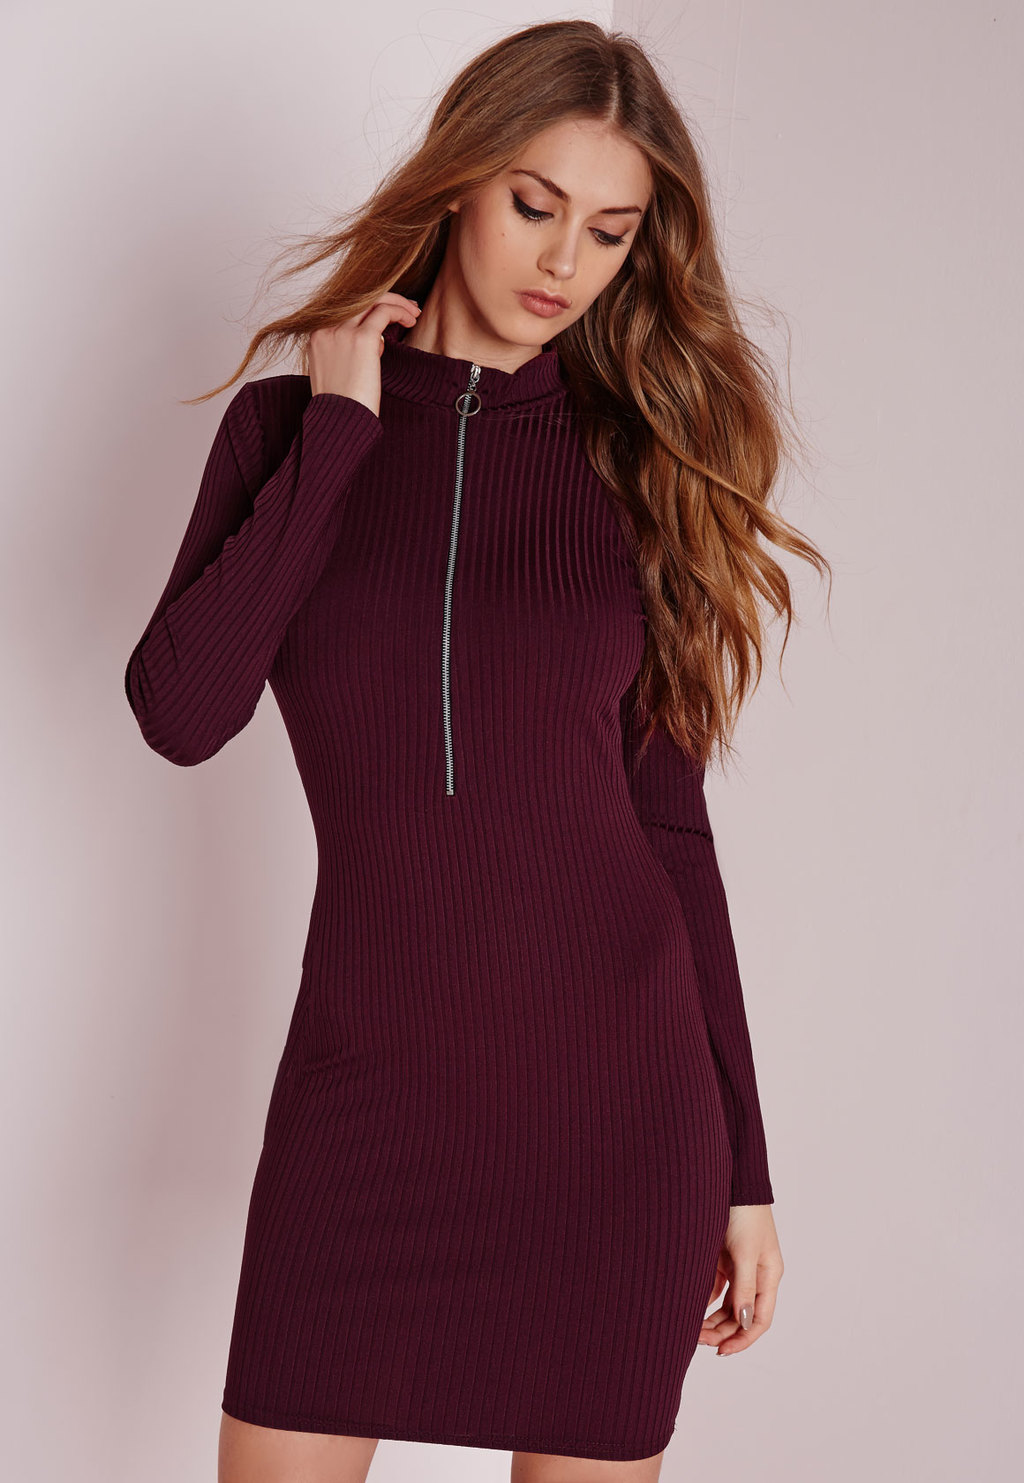 Long Sleeve Ribbed Zip Neck Bodycon Dress Burgundy, Burgundy - style: shift; length: mid thigh; fit: tight; pattern: plain; neckline: high neck; predominant colour: burgundy; occasions: evening; fibres: polyester/polyamide - stretch; sleeve length: long sleeve; sleeve style: standard; texture group: knits/crochet; pattern type: fabric; embellishment: zips; season: a/w 2015; wardrobe: event